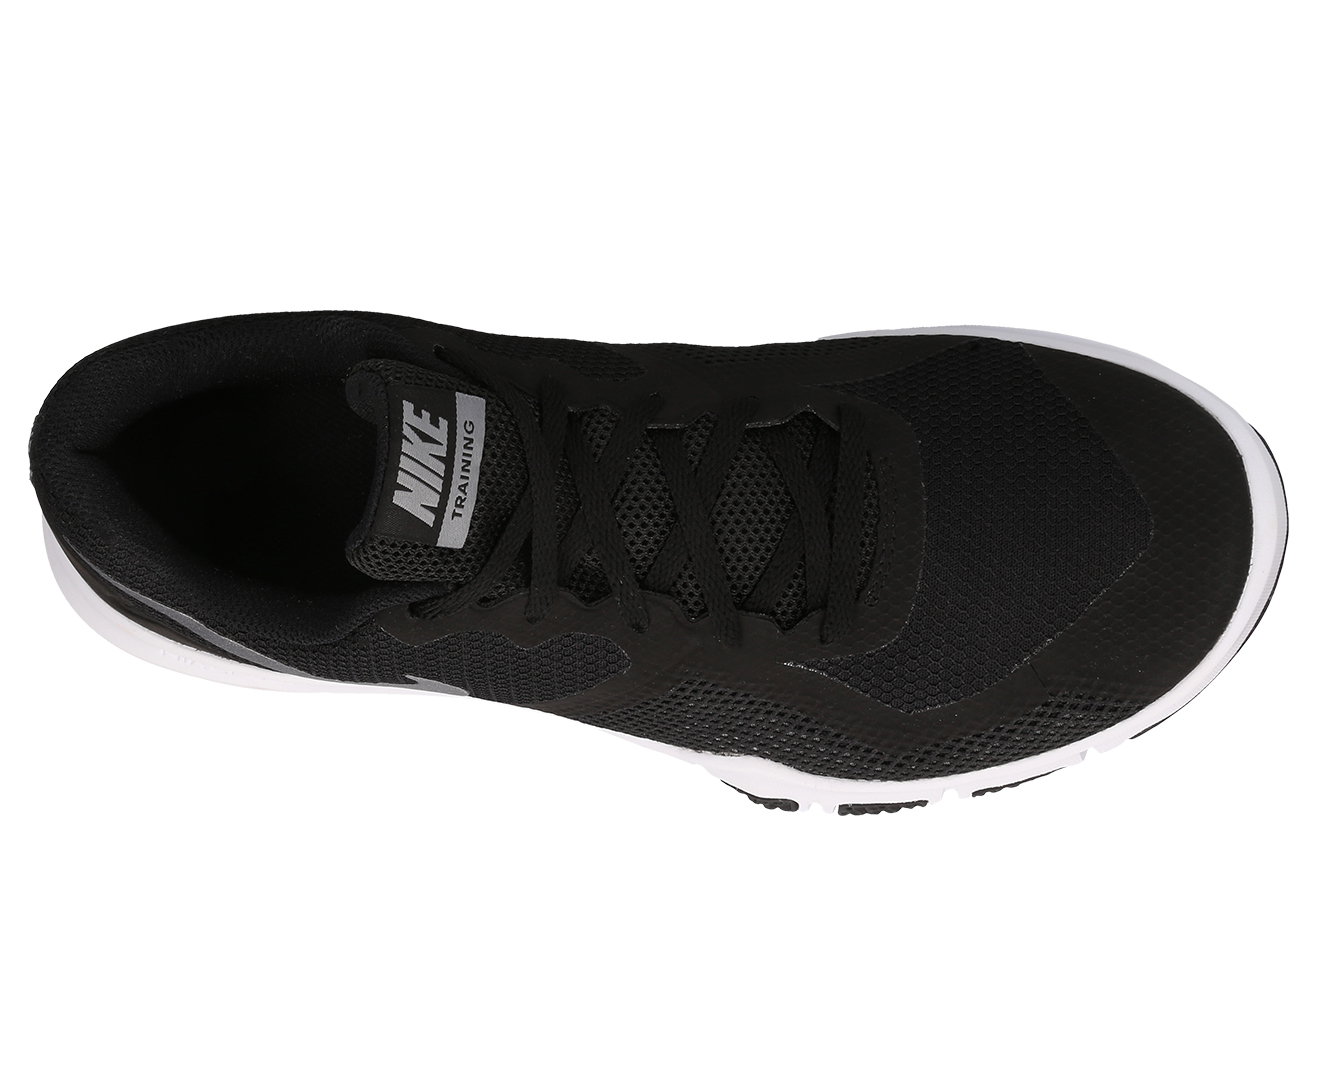 a21b22f6d666 Nike Men s Flex Control II Shoe - Black Metallic Cool Grey